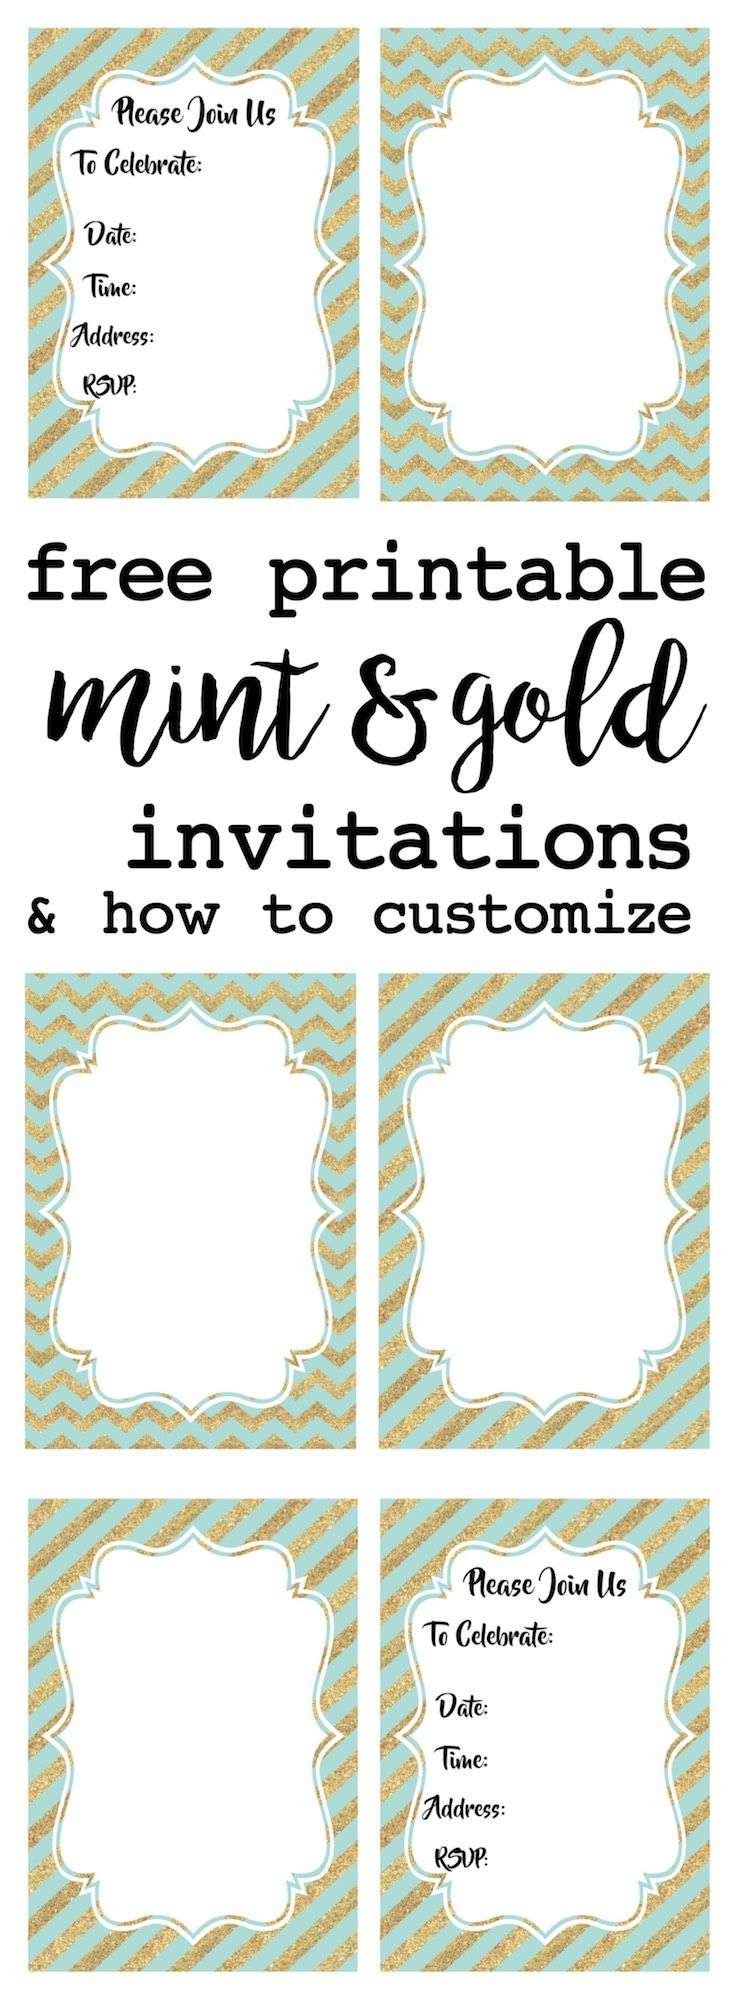 Mint and Gold Party Invitations Free Printable | Gold invitations ...